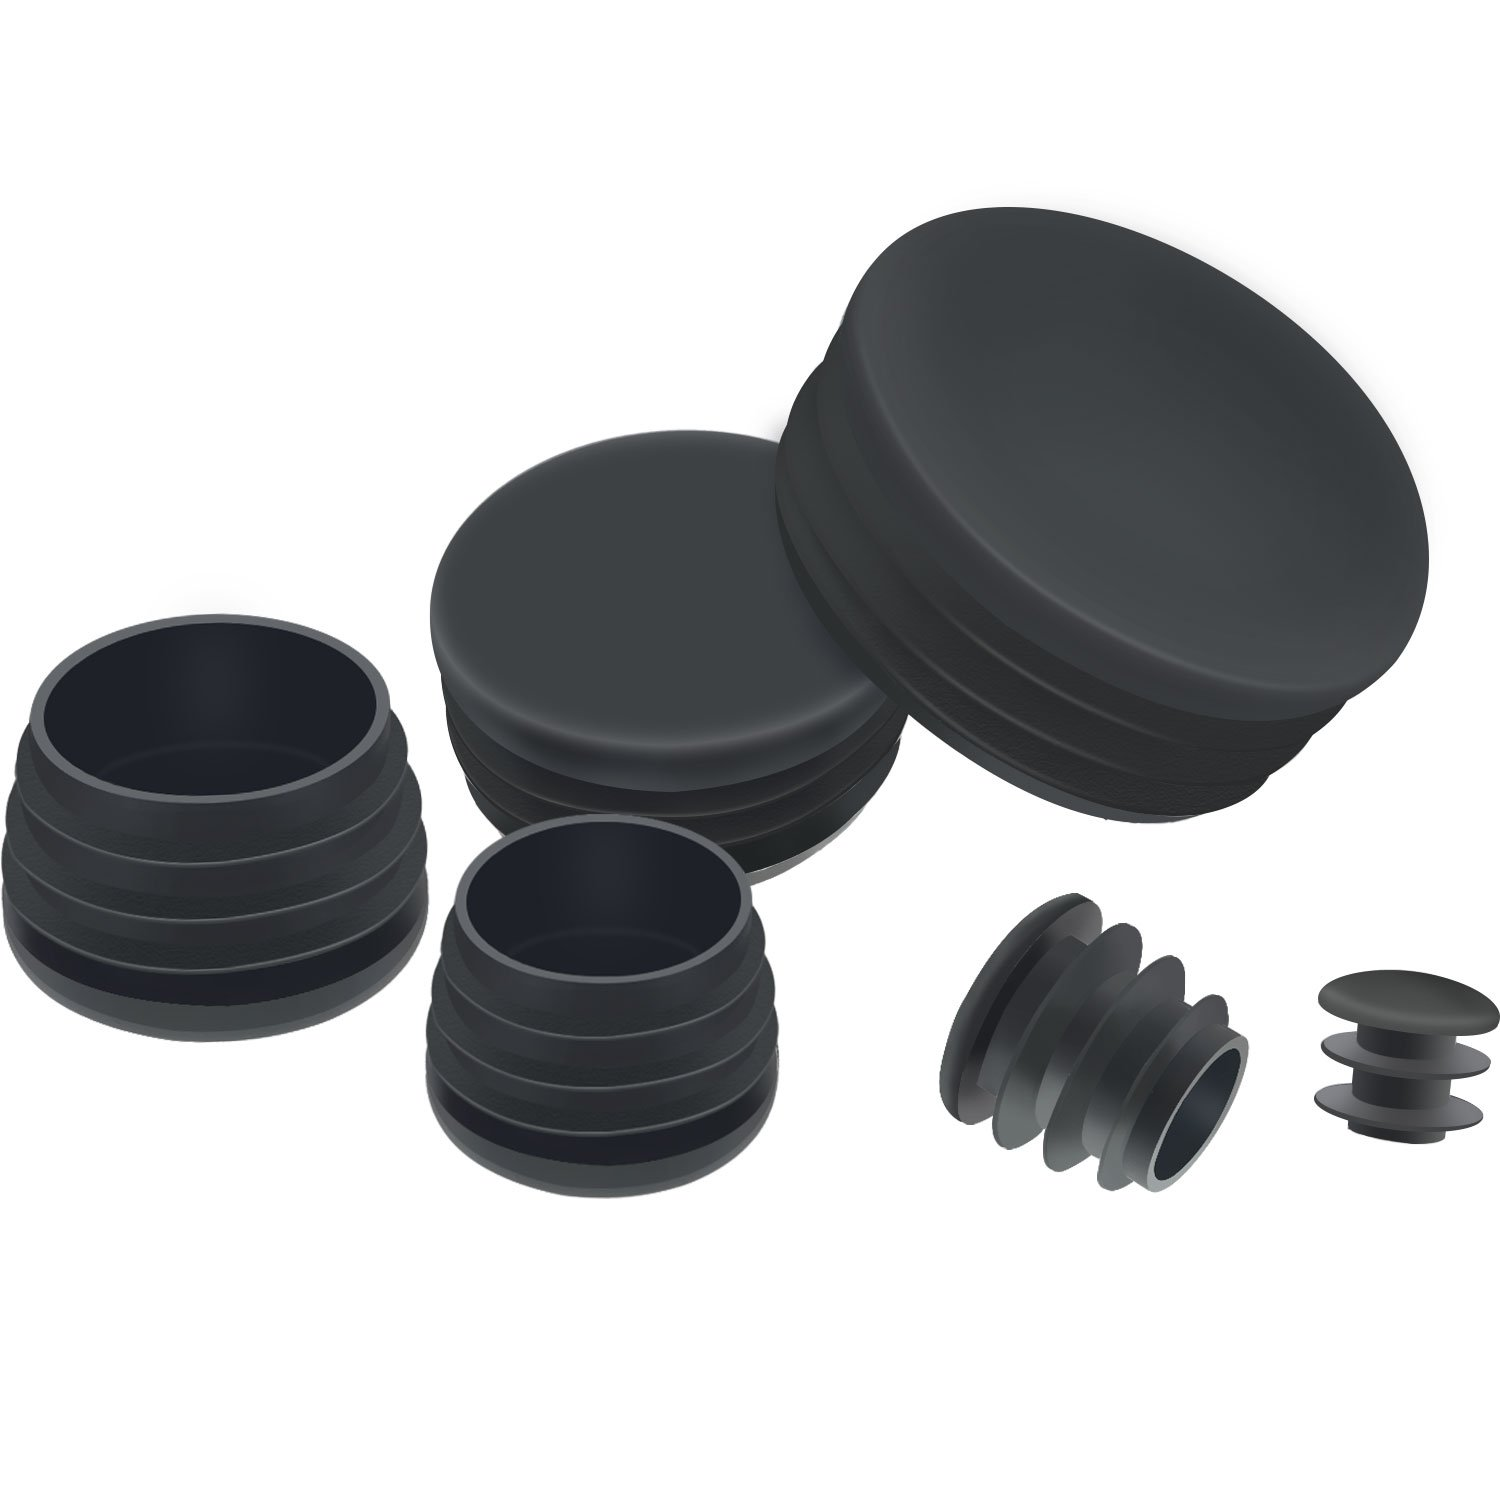 10 Round Plastic End Caps Blanking Plugs Pipe Tube Insert Chair Table Glide Legs